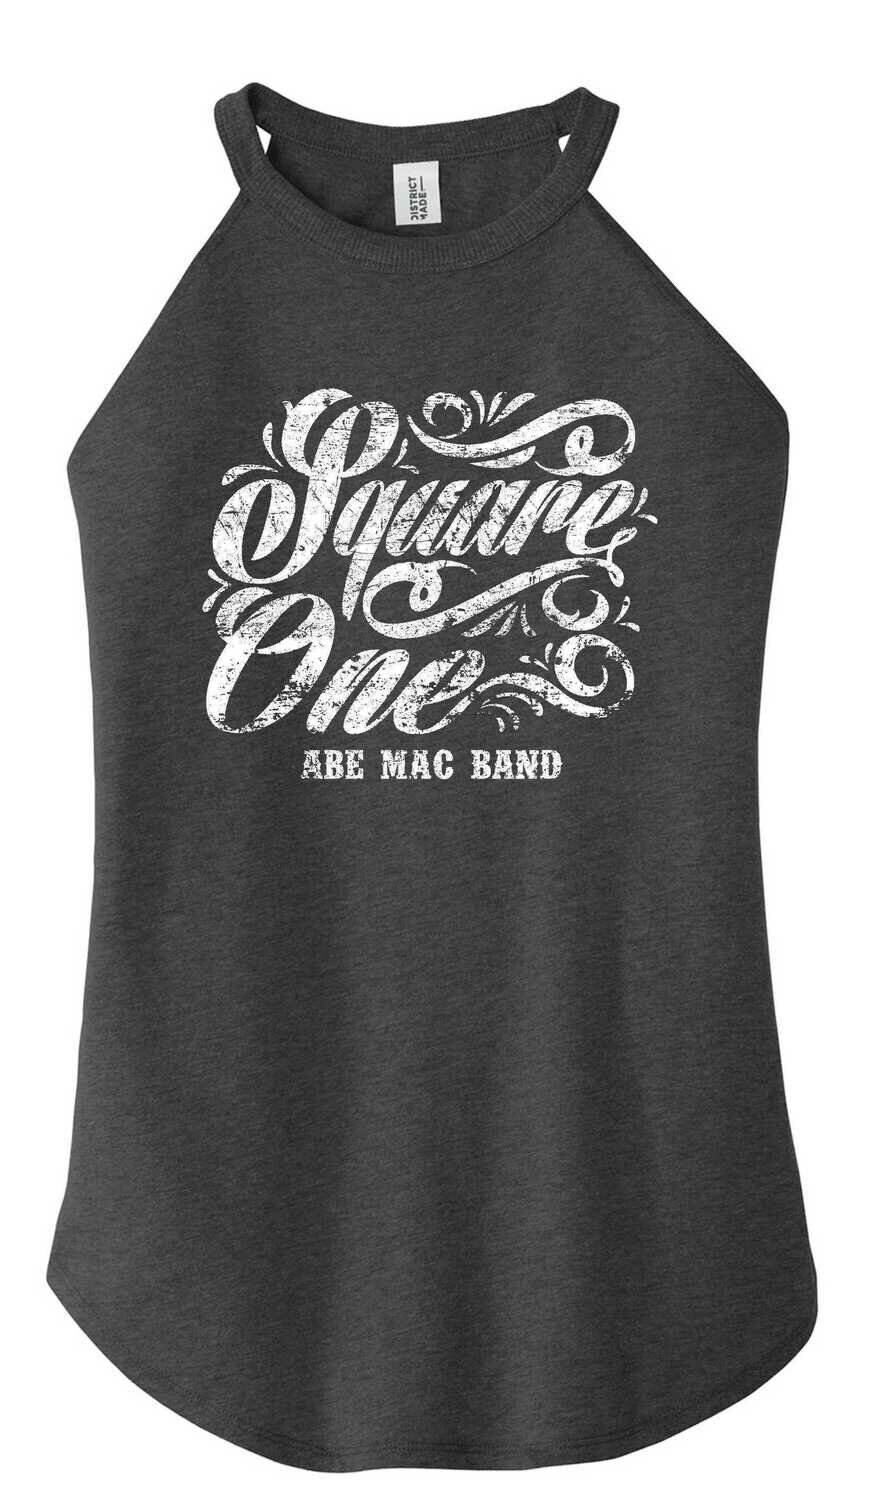 Square One Rocker Tank